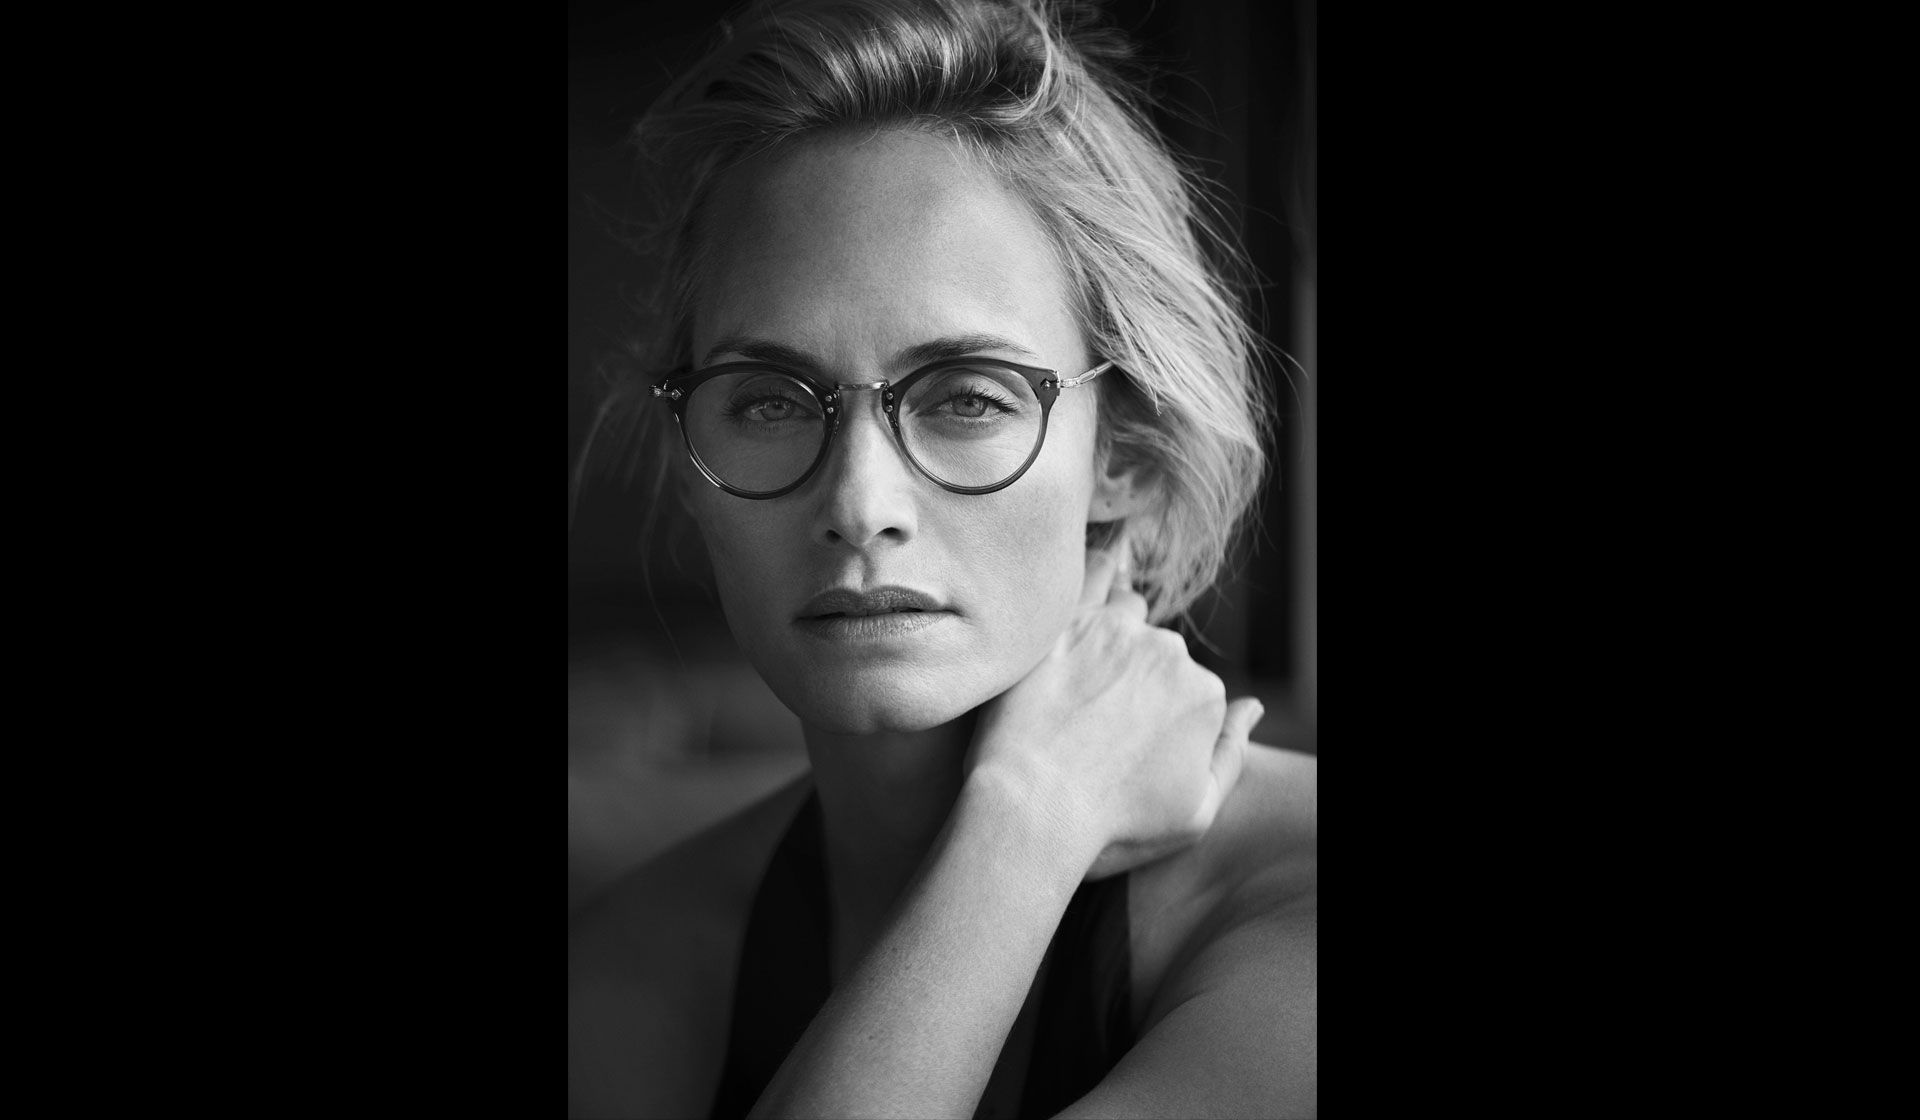 ff993fdc716 Oliver Peoples has developed iconic imagery and campaigns that reflect our  commitment to integrity